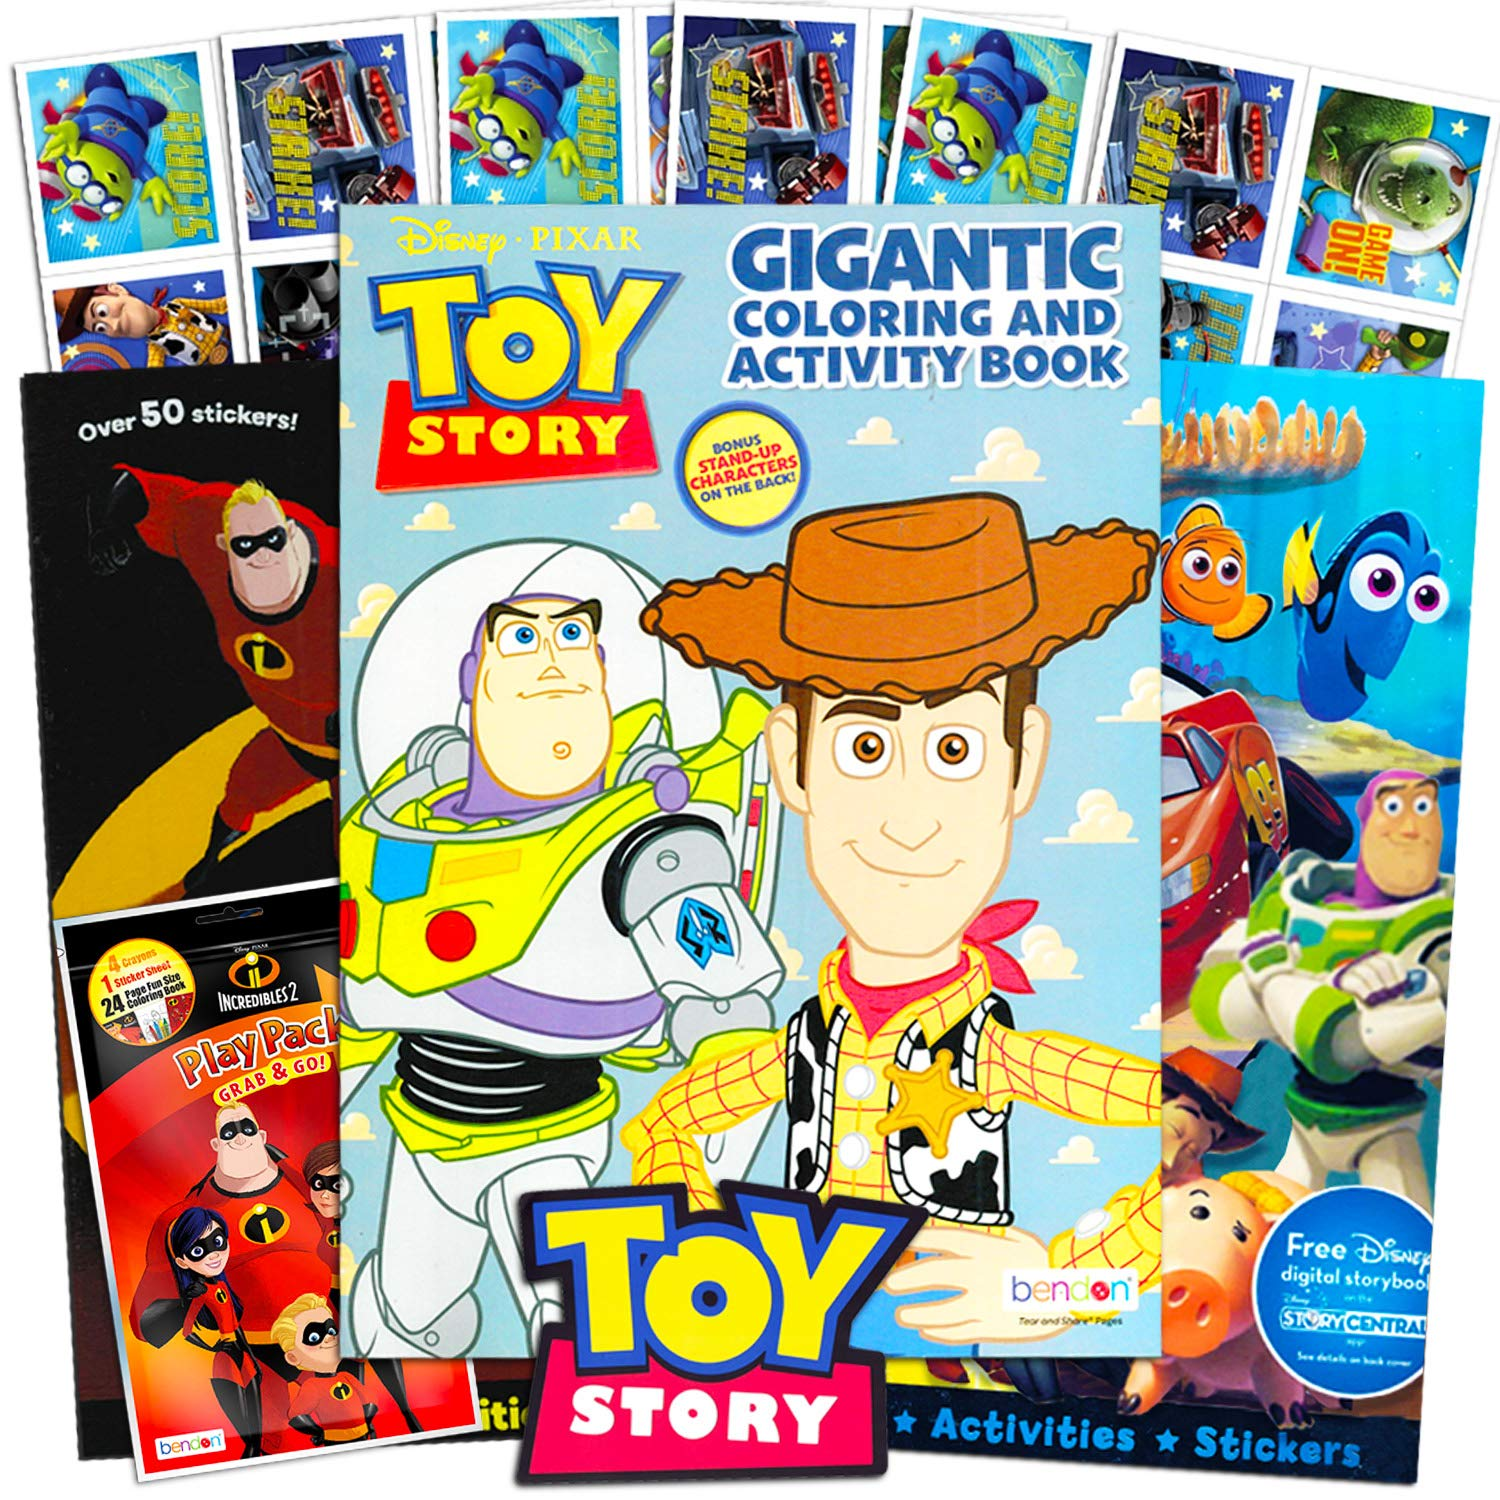 Disney Toy Story Coloring Books For Toddlers Kids Playset 3 Disney Coloring And Activity Books Crayons And Toy Story Stickers Toy Story Party